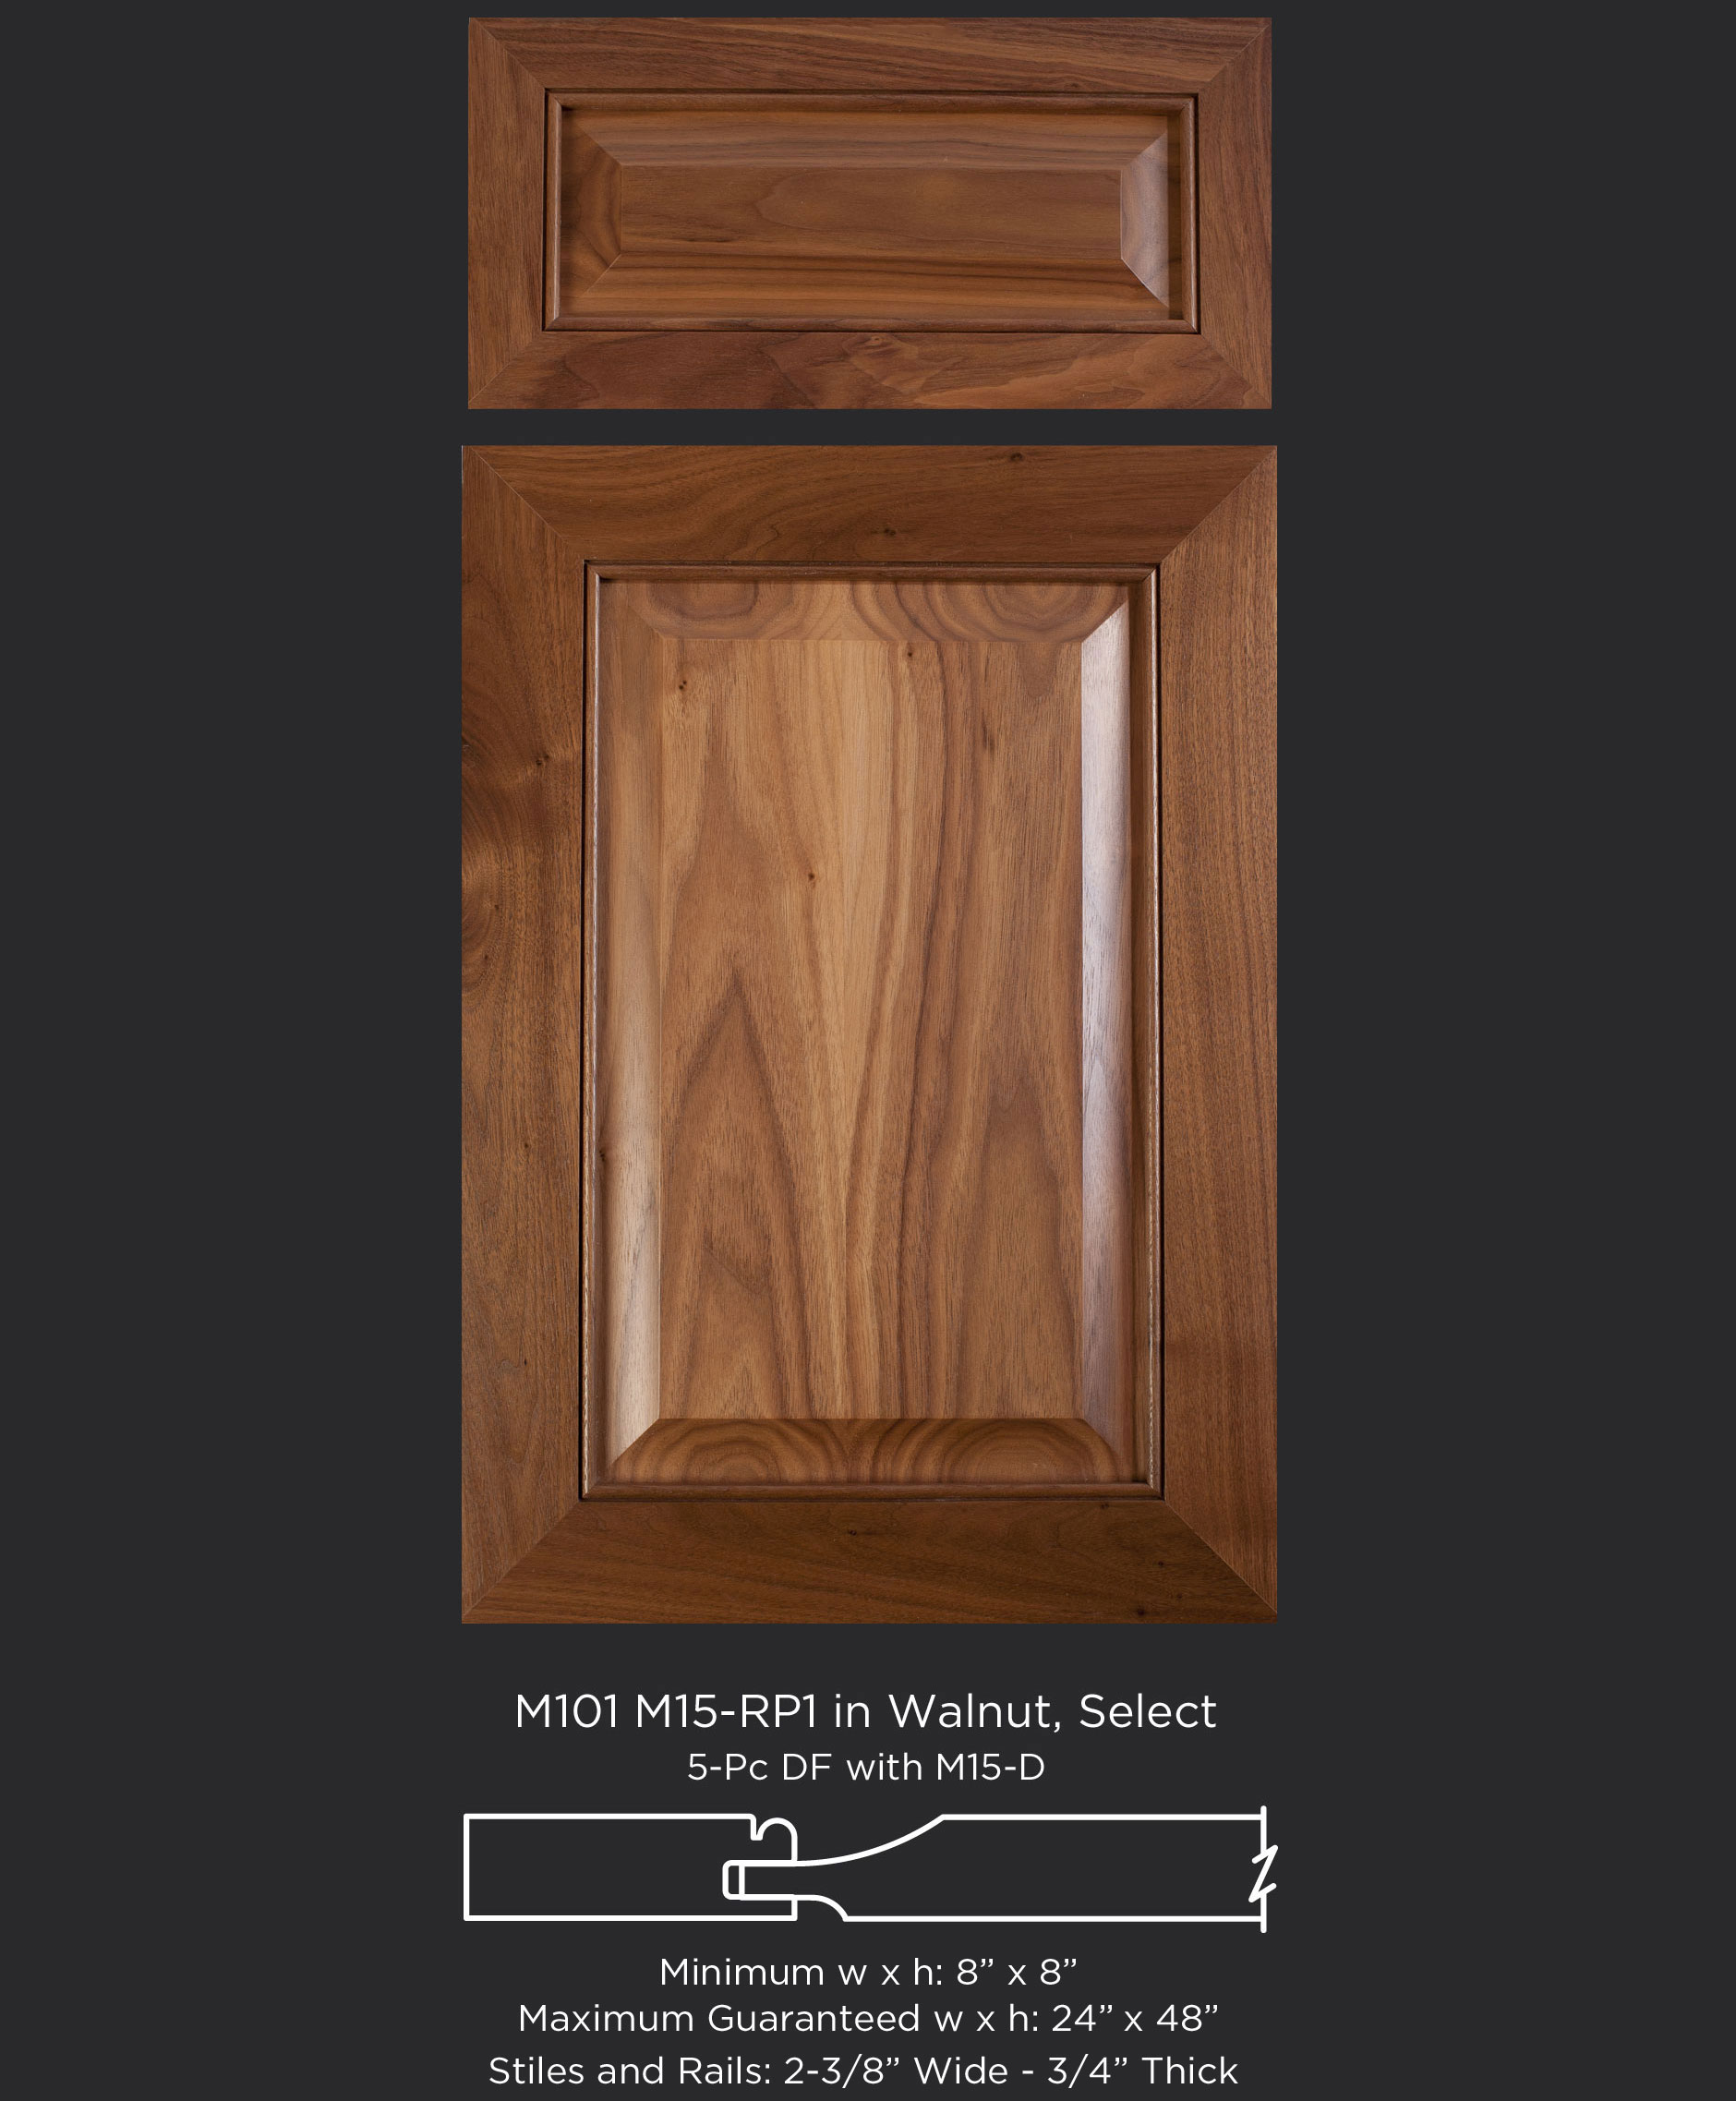 Mitered Cabinet Door M101 M15-RP1 in Walnut, Select and 5-piece drawer front with M15-D